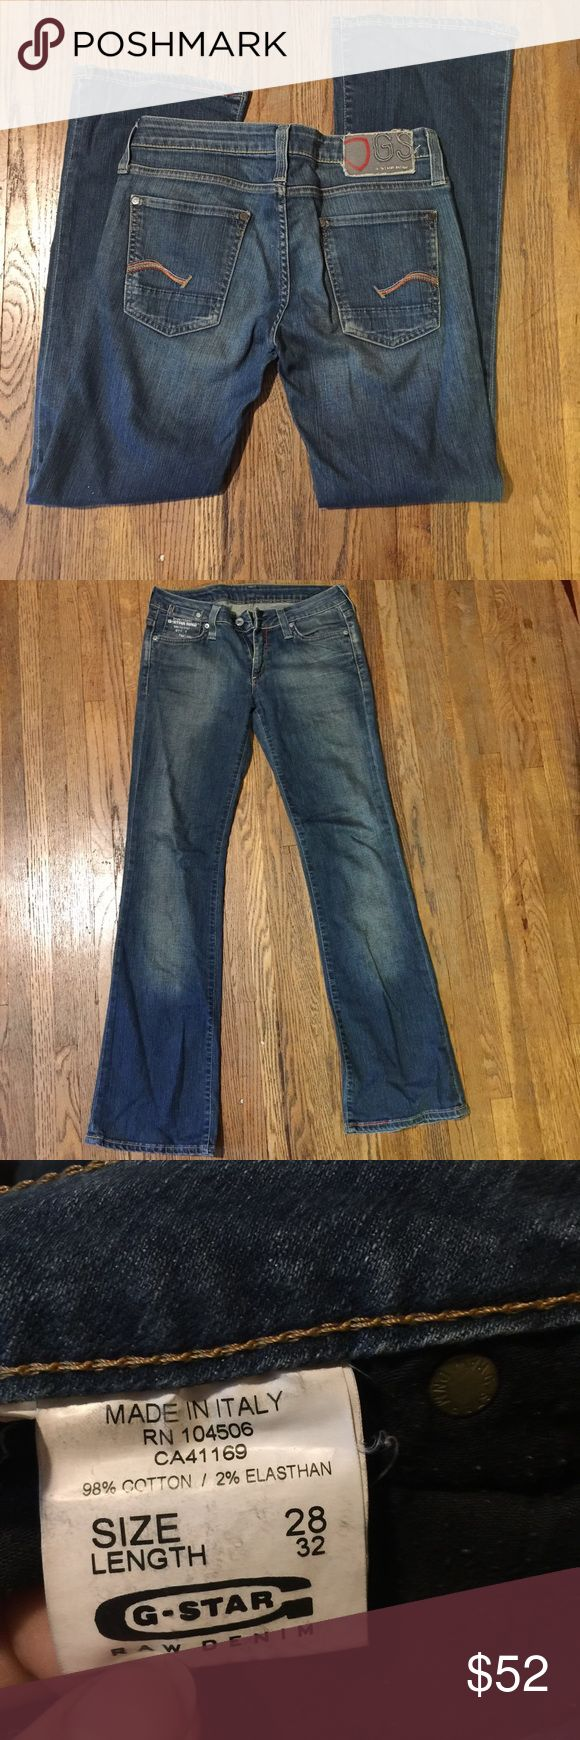 G-Star Raw Jeans Size 28 G-Star Raw boot cut jeans size 28 length 32. Lighter faded wash.  These are barely worn G-Star Jeans Boot Cut